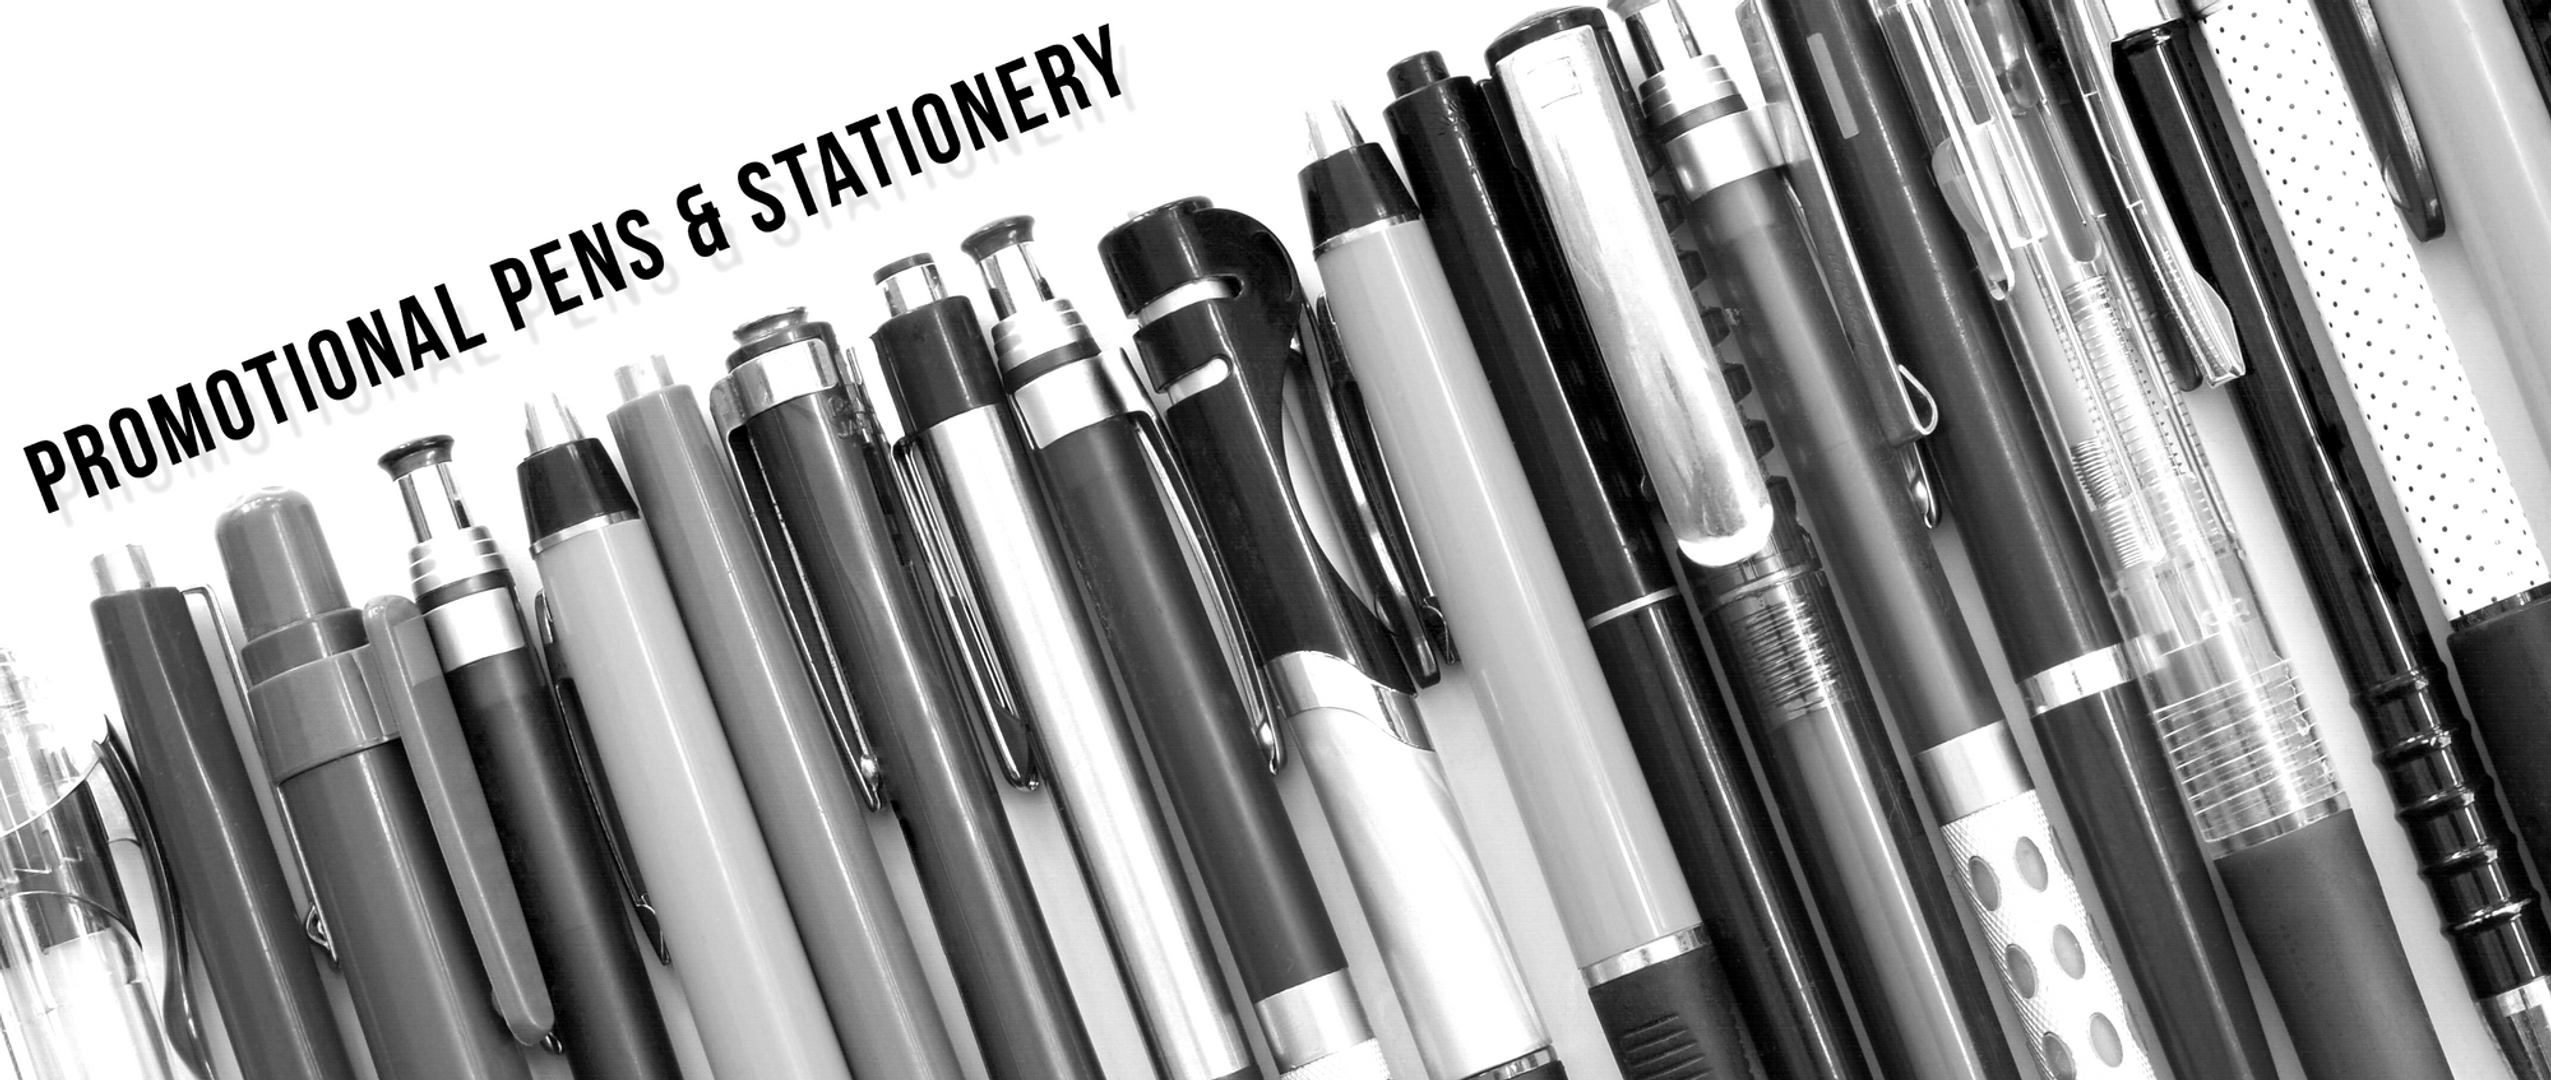 Team Promo Stationery_edited.png